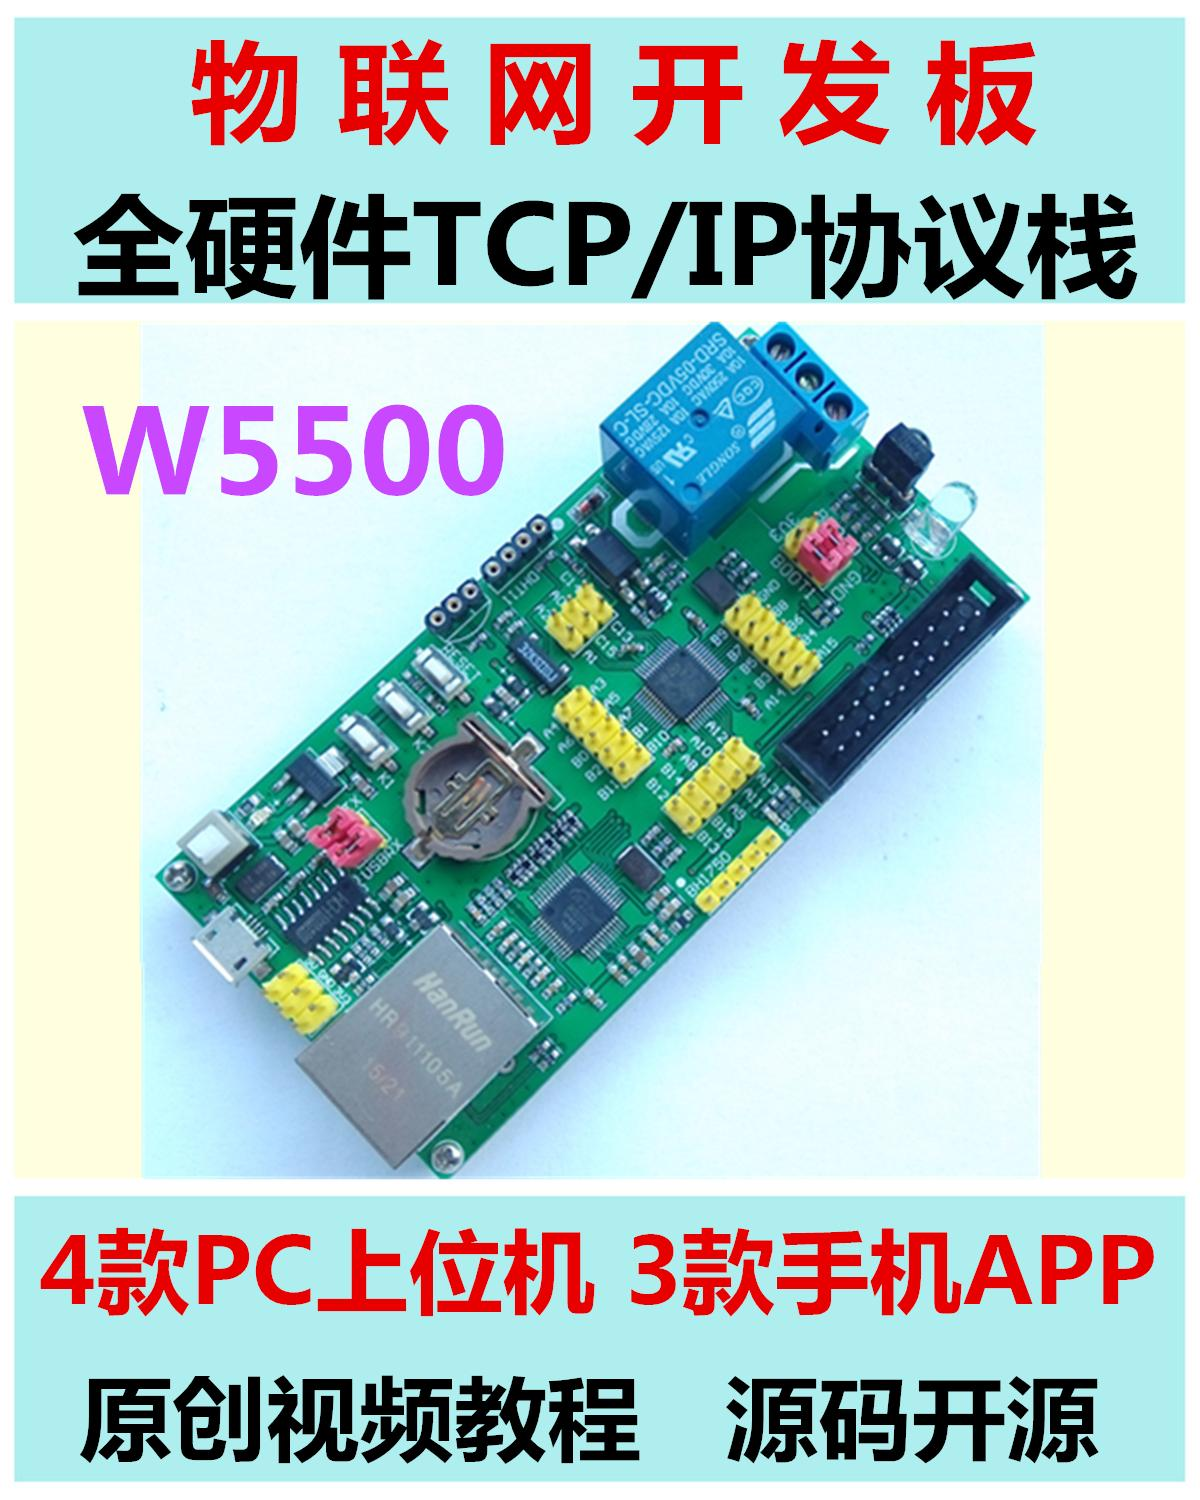 US $44 99 |STM32 development board core board Internet of things  /W5500/APP/ host / Ethernet / infrared learning-in Network Cards from  Computer &